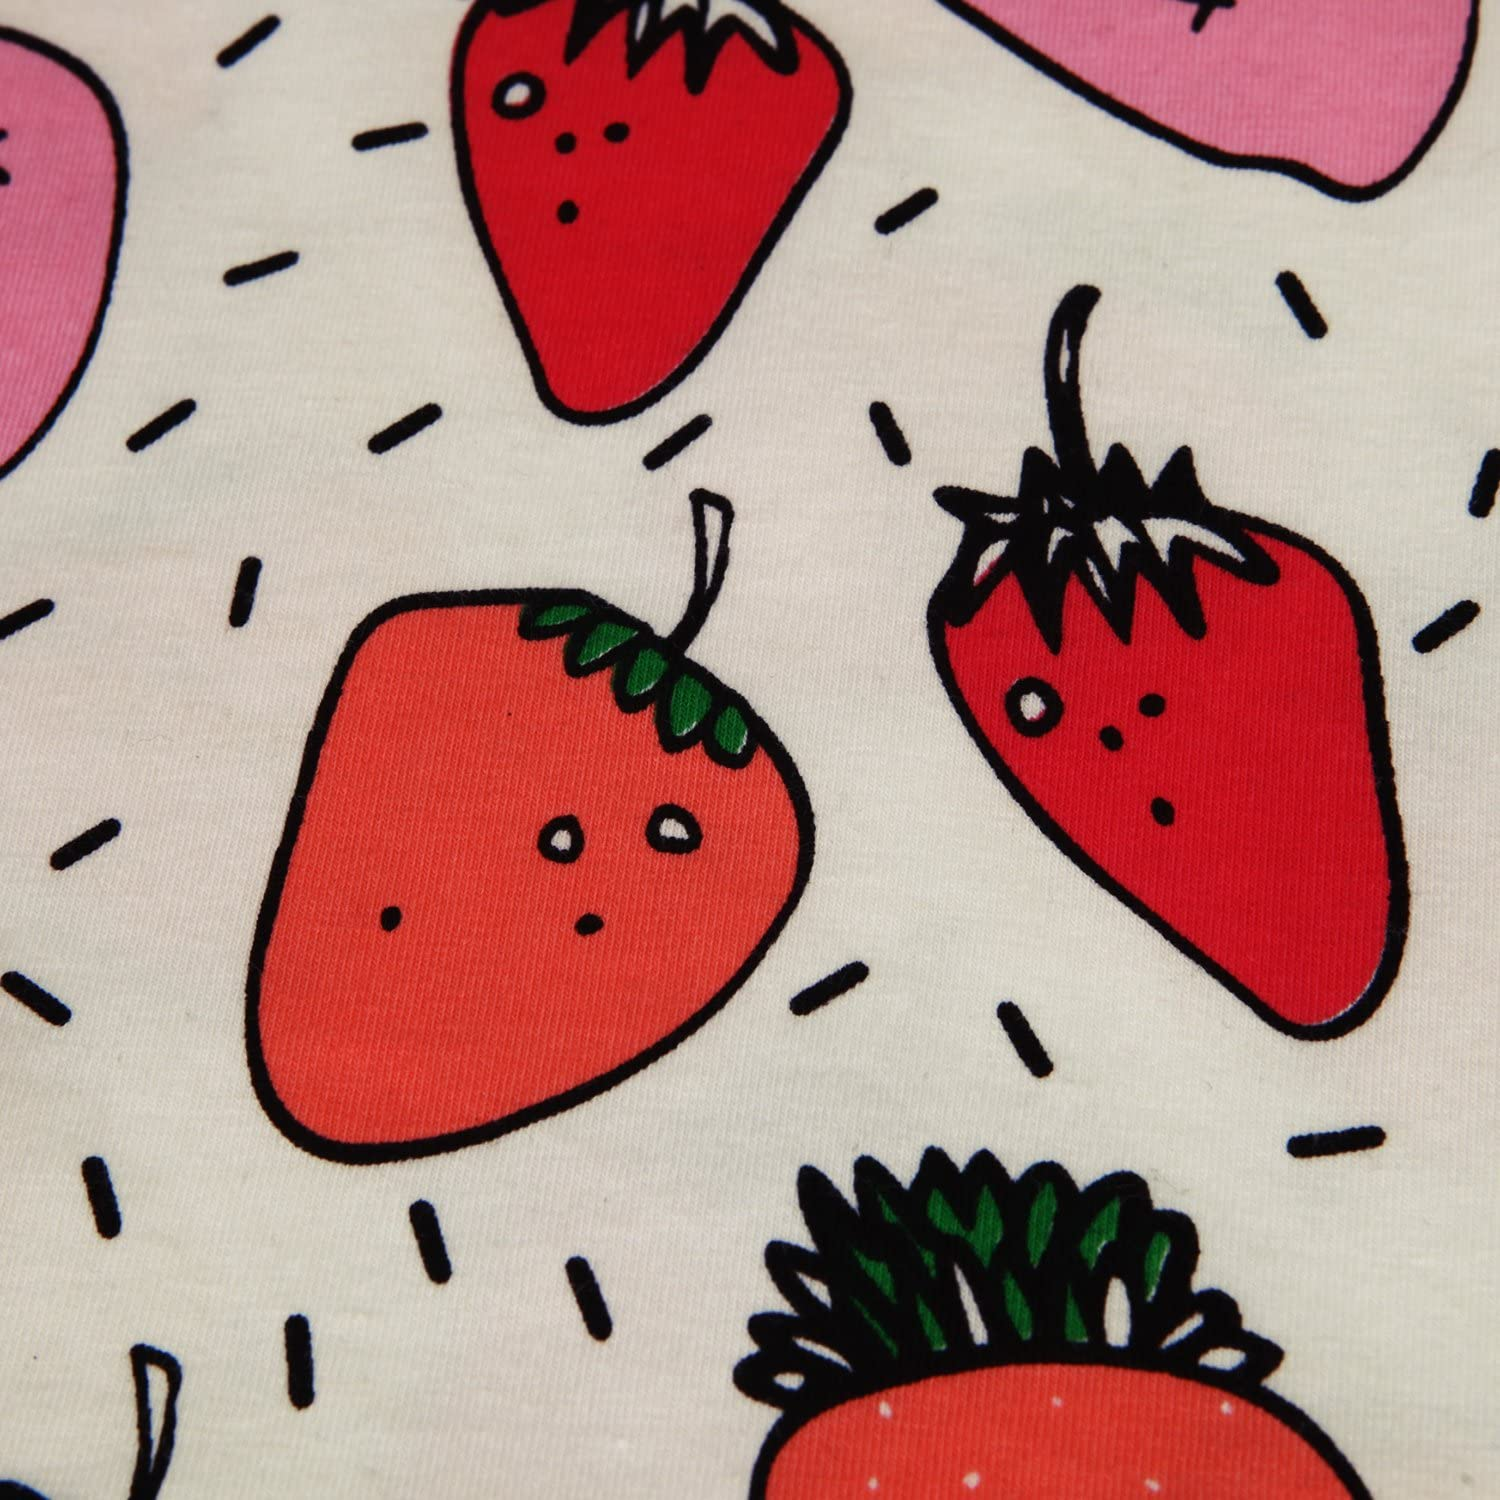 Chen Summer Baby Fruit Printed Cotton Tank Tops Tee Shirts